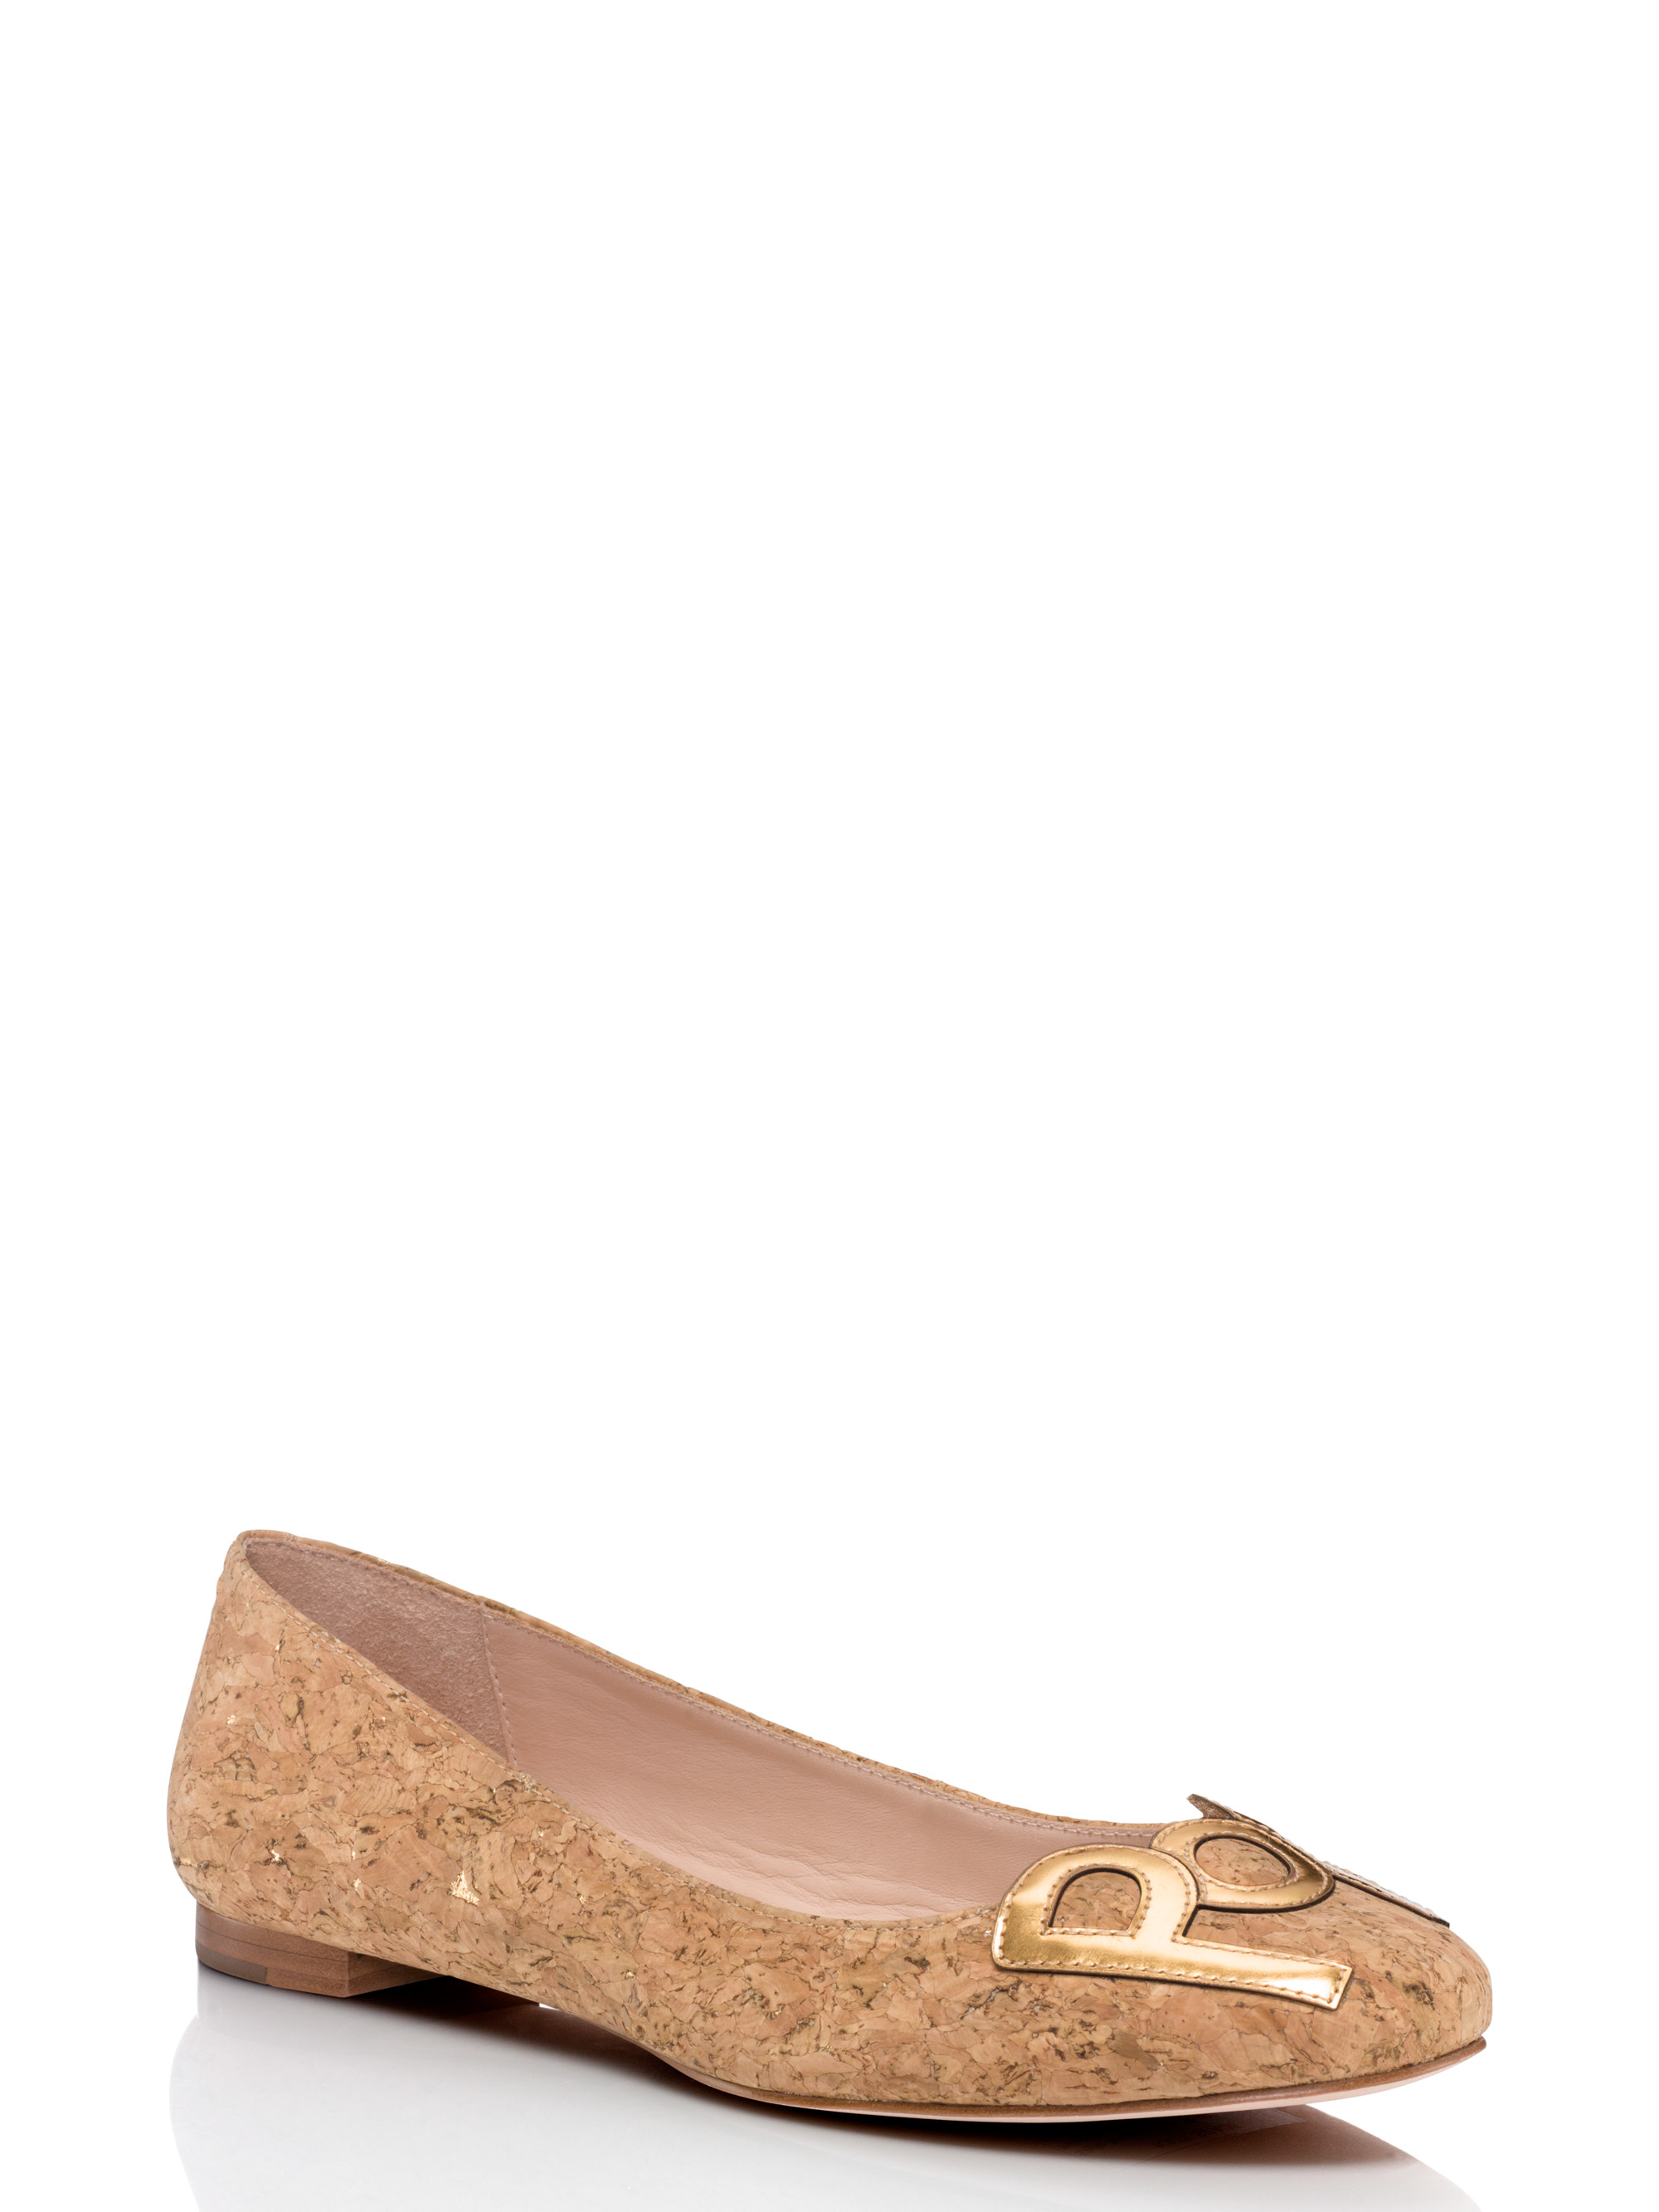 Kate spade new york toast flats in natural lyst for Kate spade new york flats